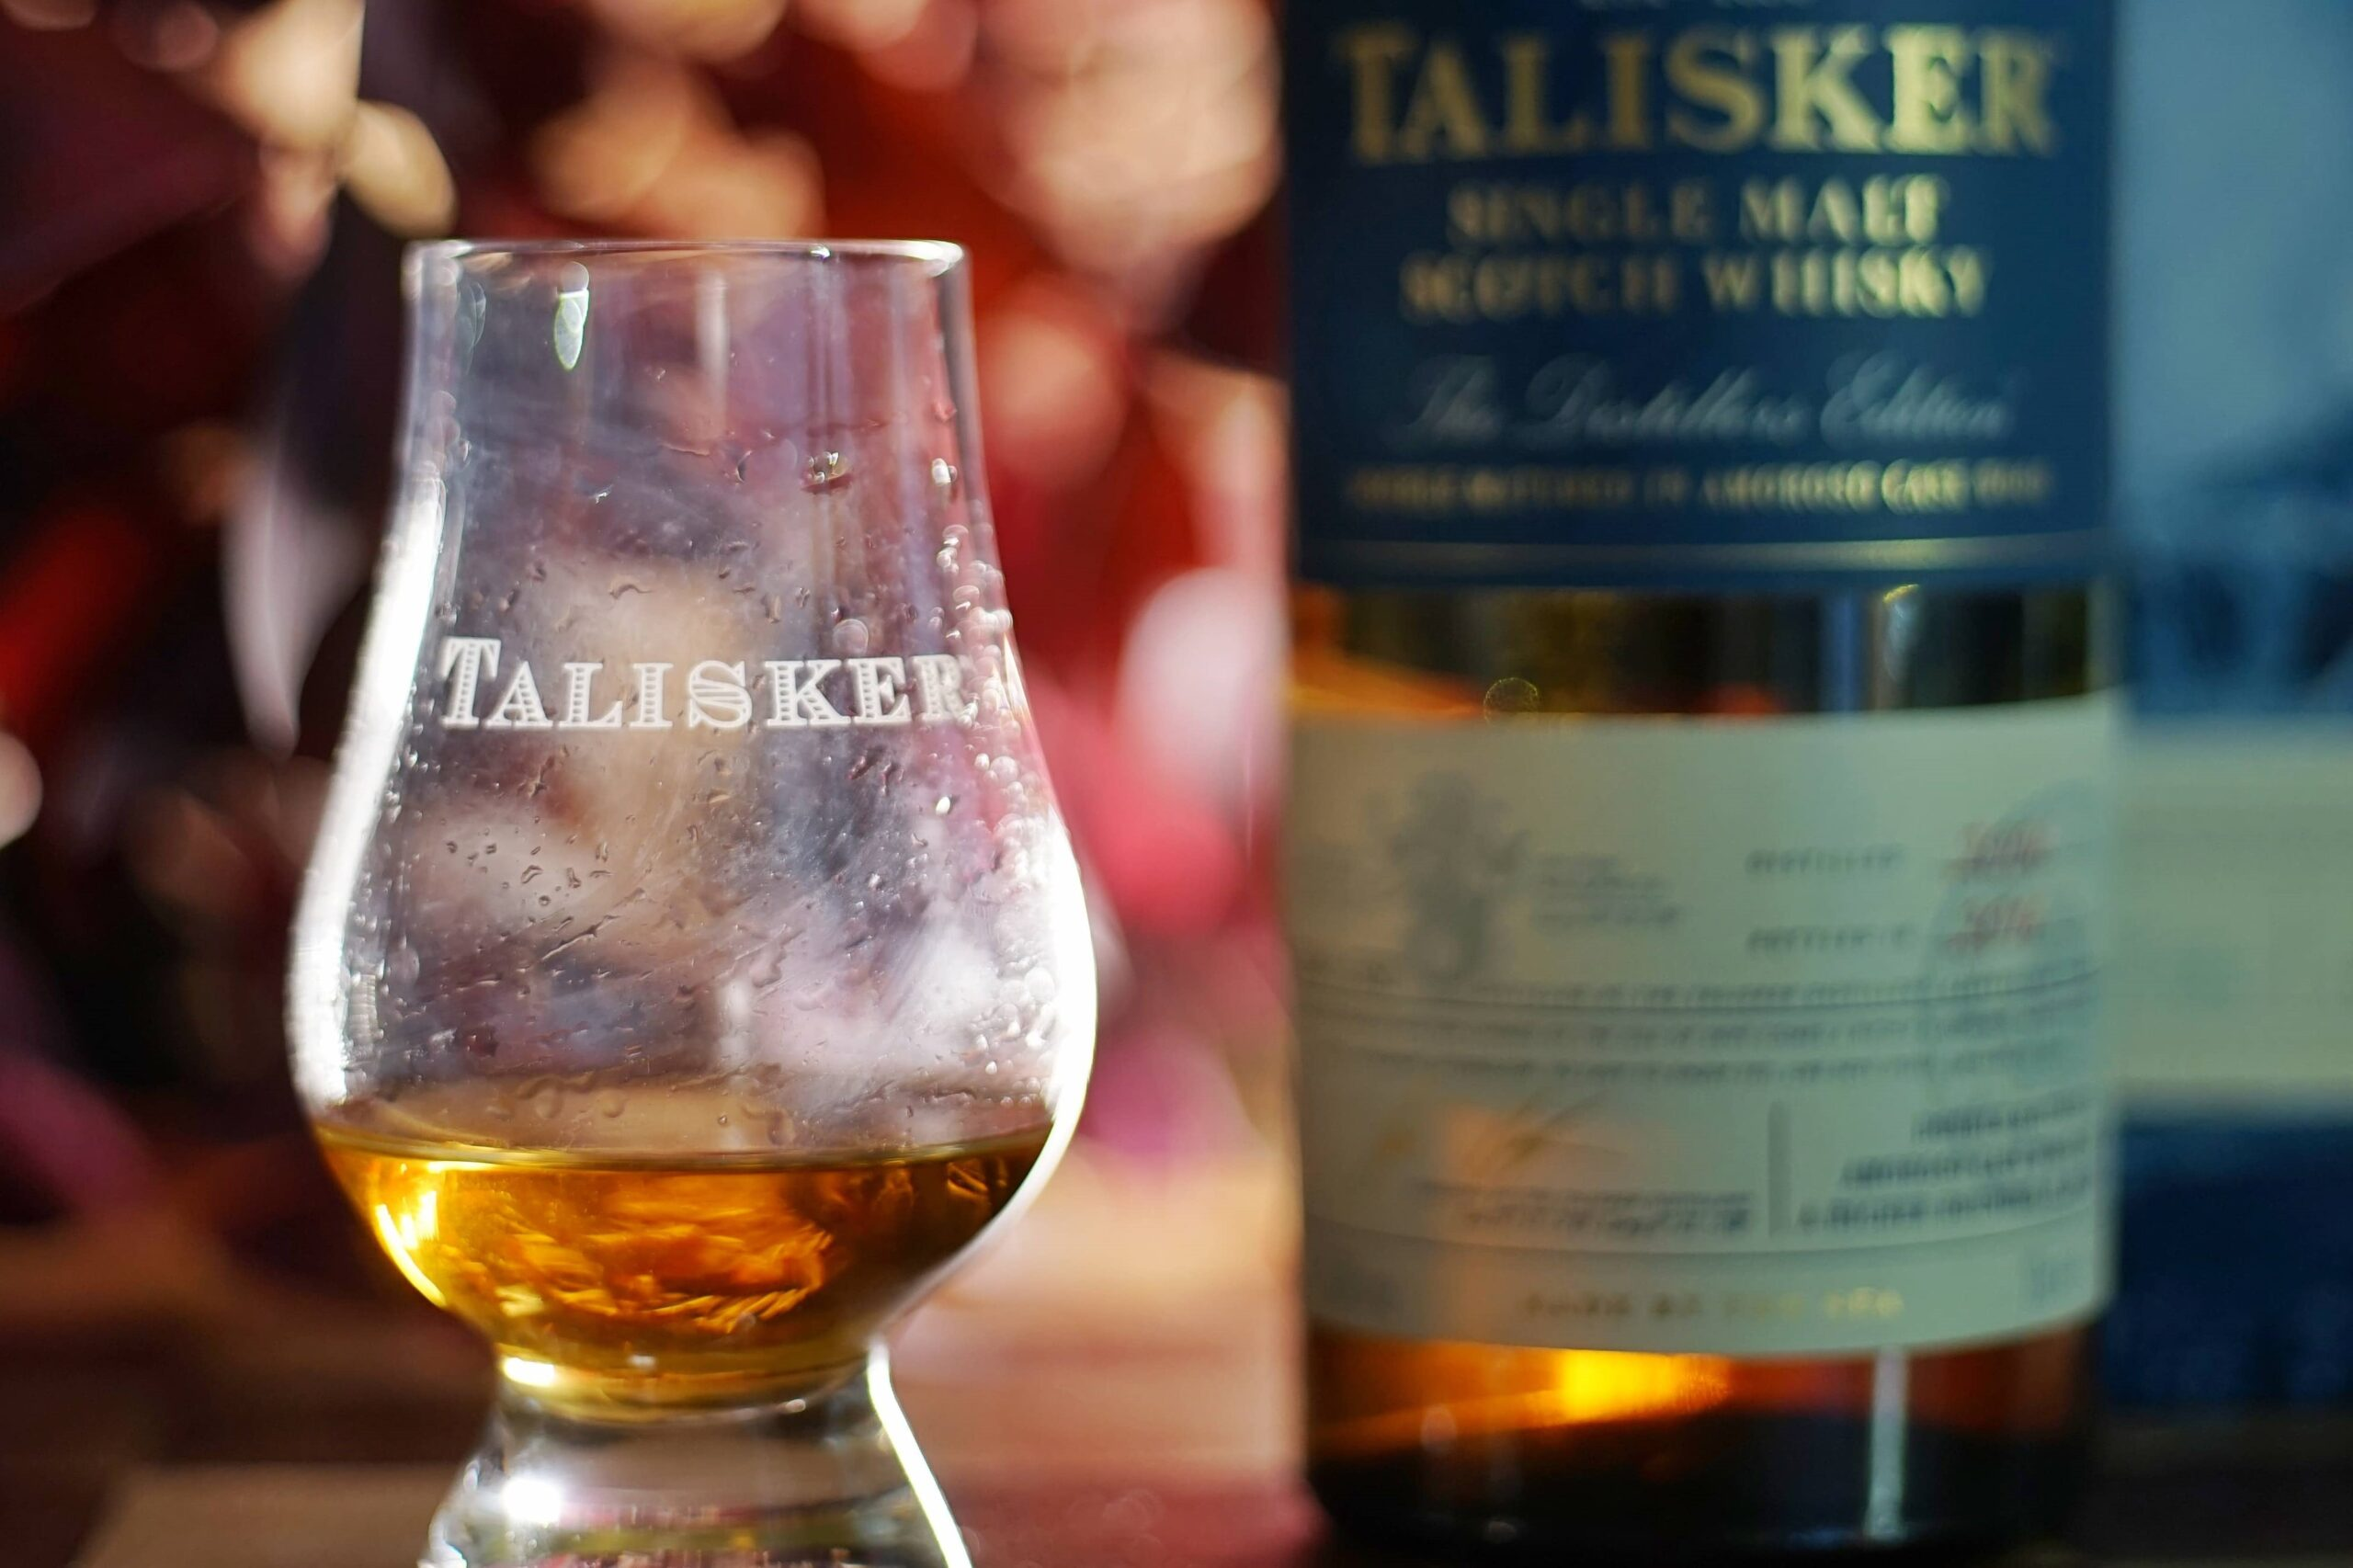 A talisker whisky bottle and a tasting glass with scotch on it